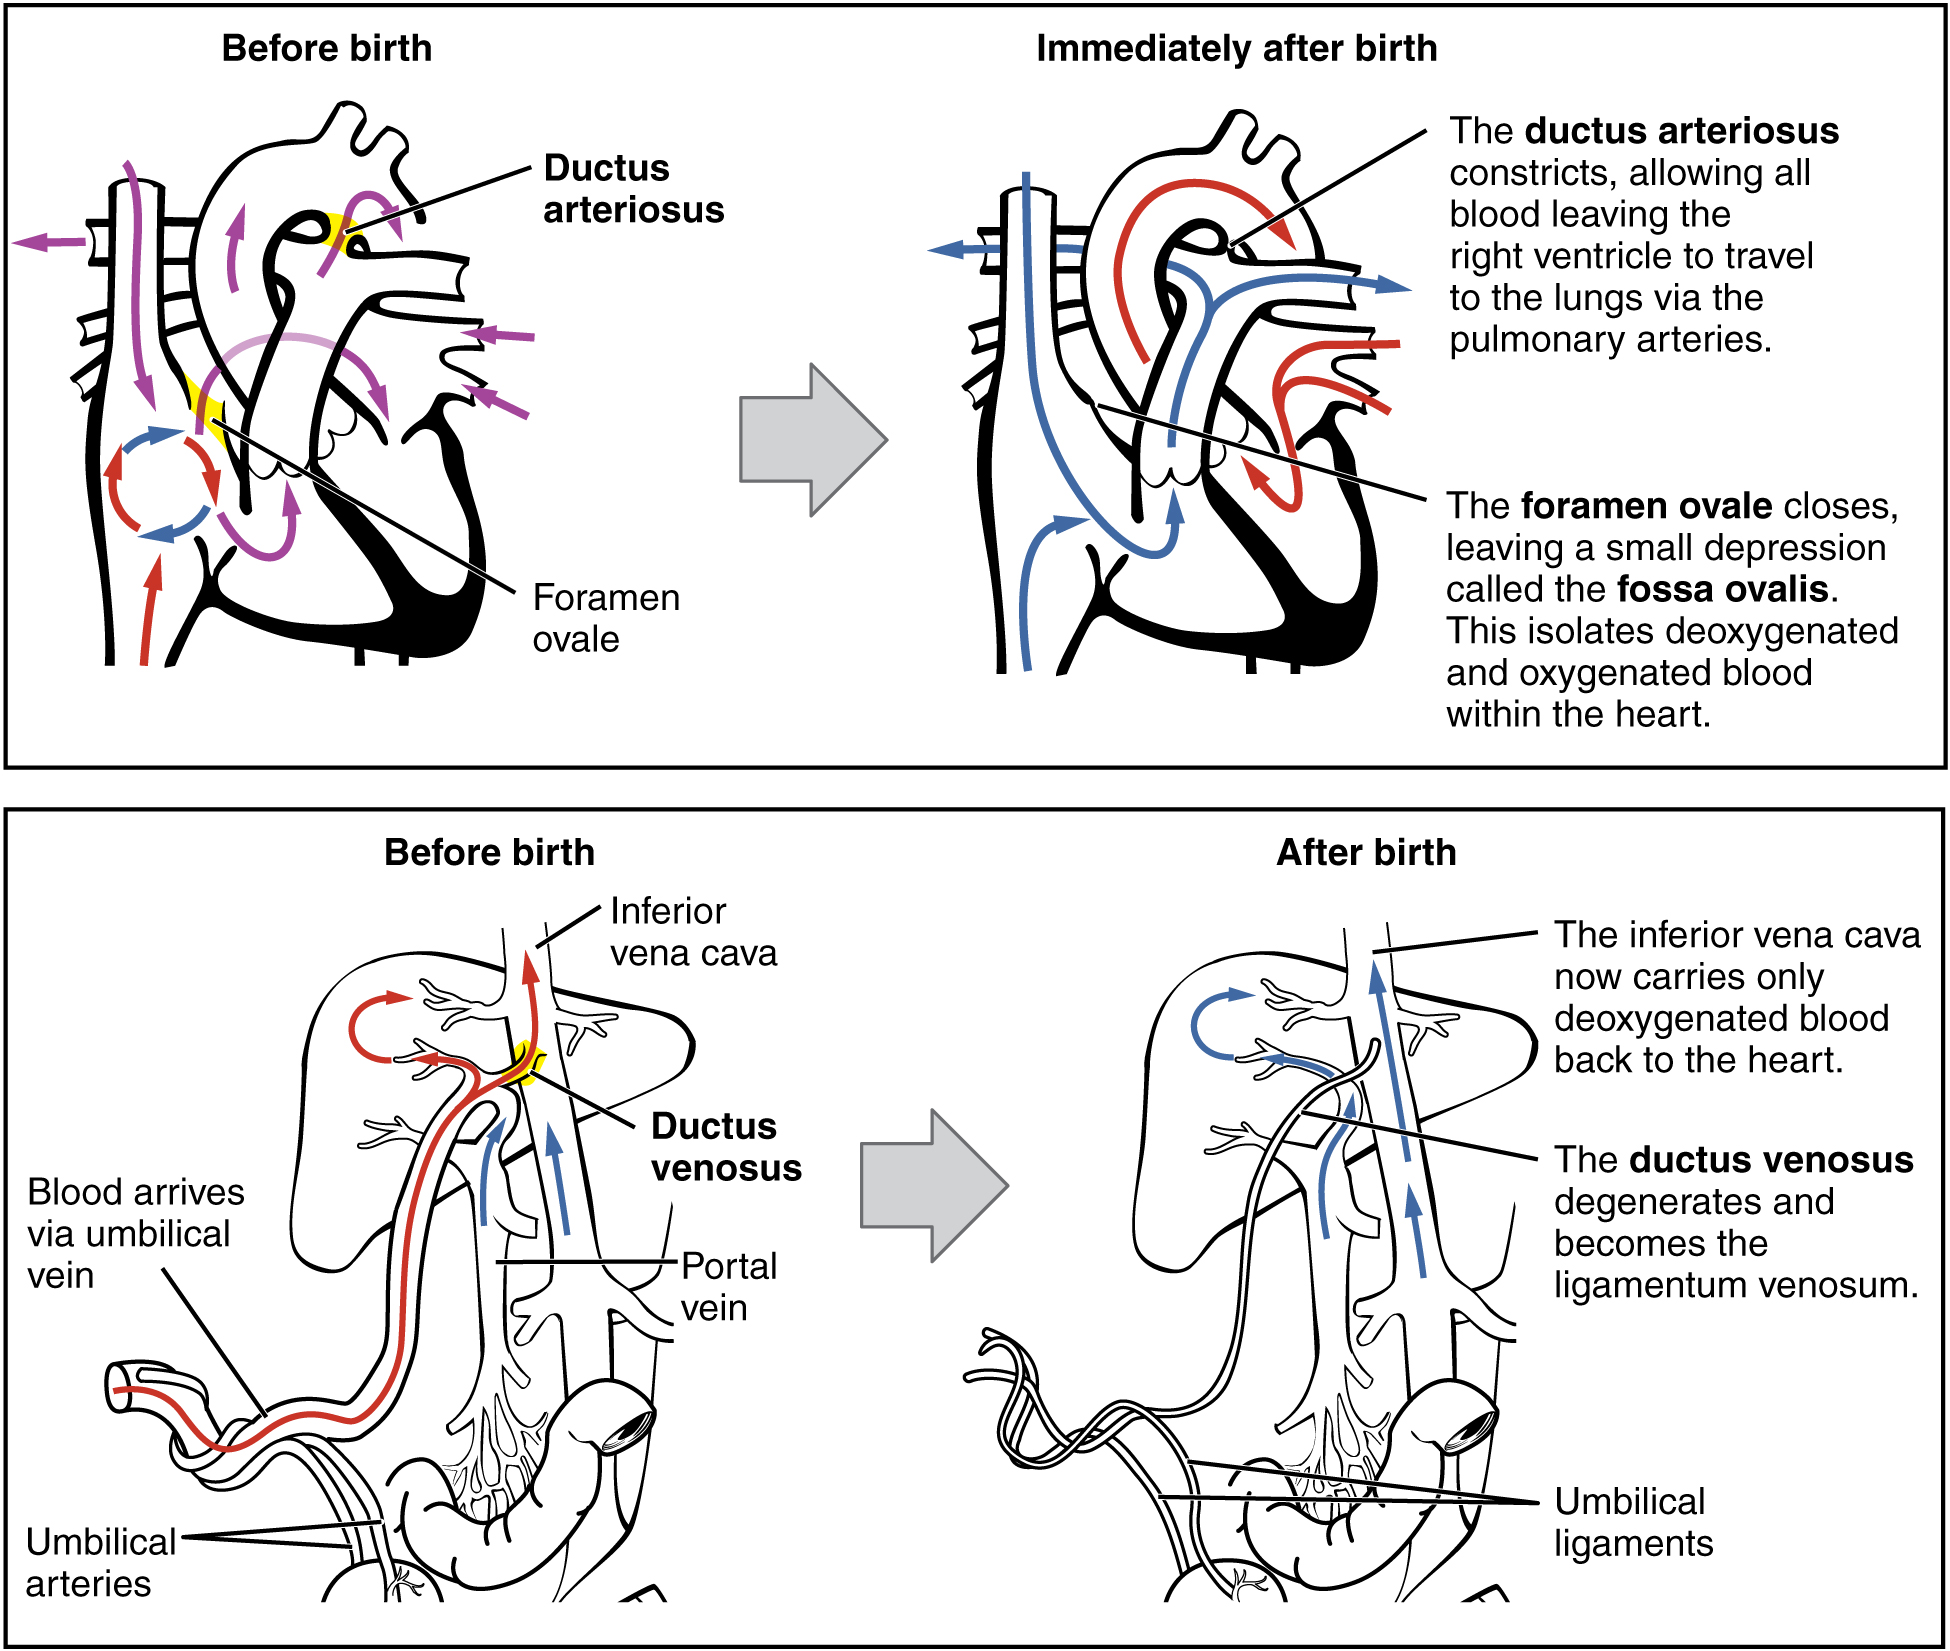 This figure illustrates the circulatory system in a newborn. The left image in both panels shows the blood circulation before birth and the right image shows the blood circulation after birth.